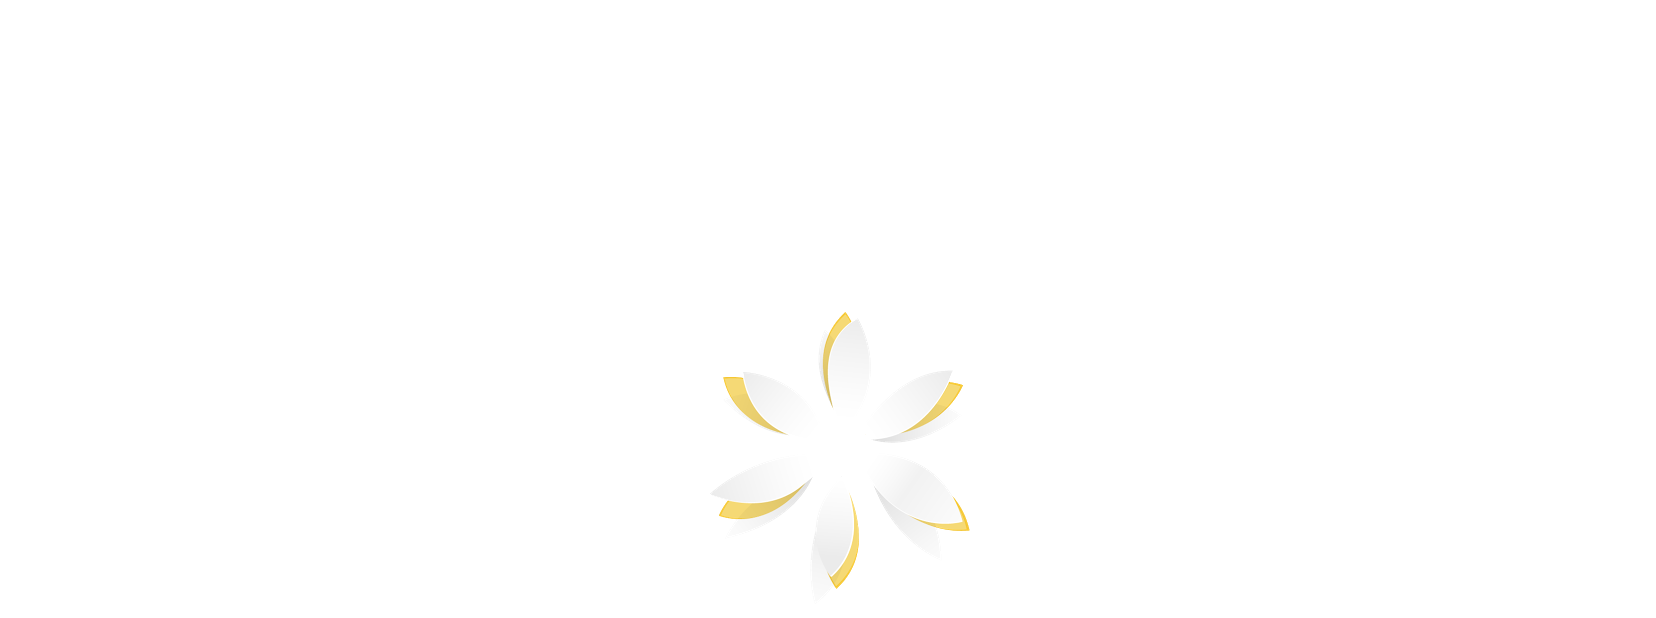 Zagara & Jasmine - Sicilian Food Shop